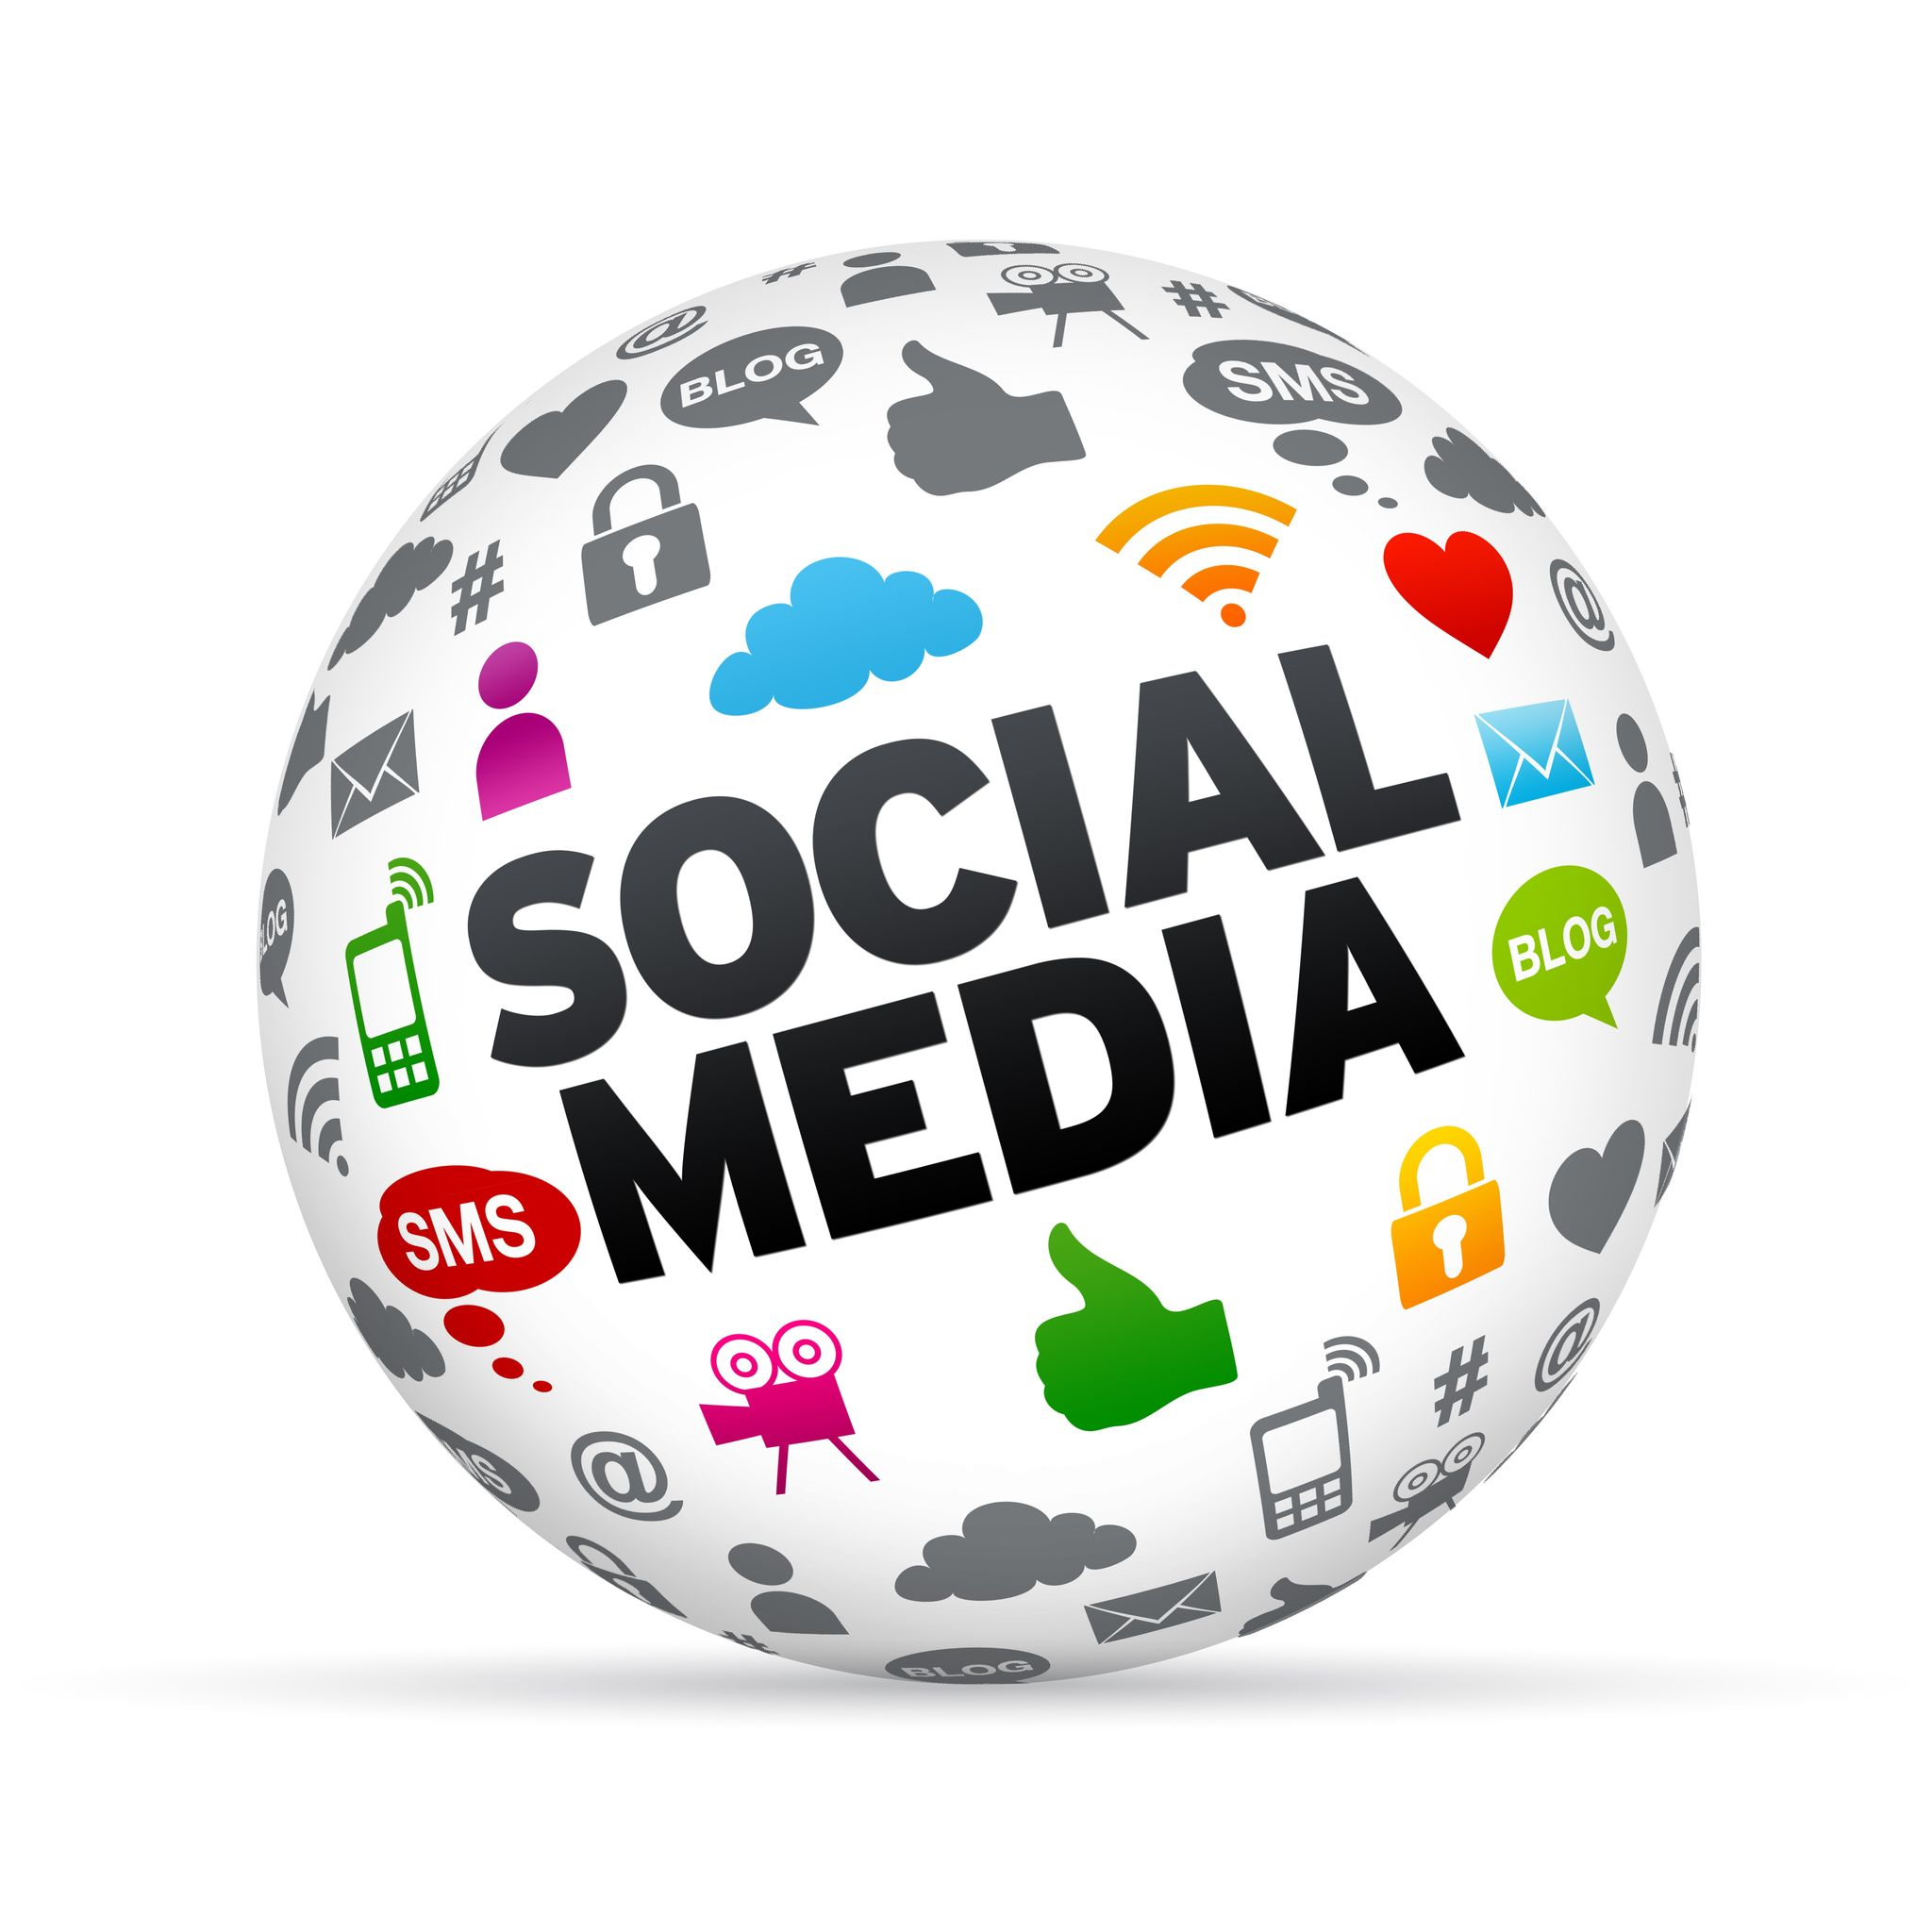 Boost the engagement, Build a Community, Comprehend Your Audience, few tips for grow business on social media, Grow business on social media, increase online presence, Pick the Right Stage, Share Video, Social Media, social media presence